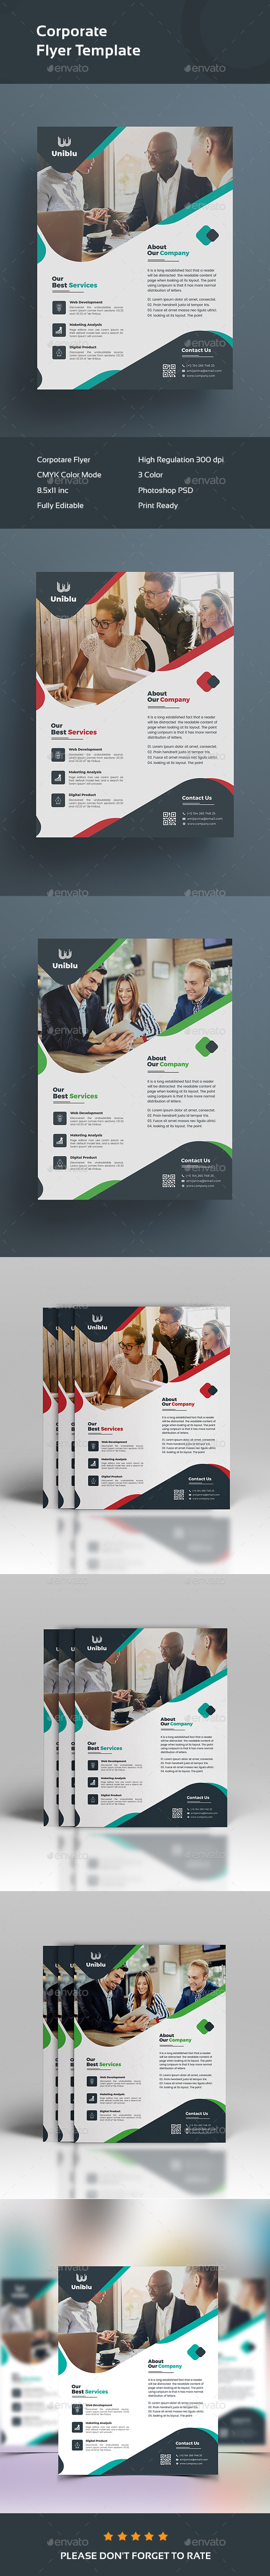 Flyer - Corporate Business Cards